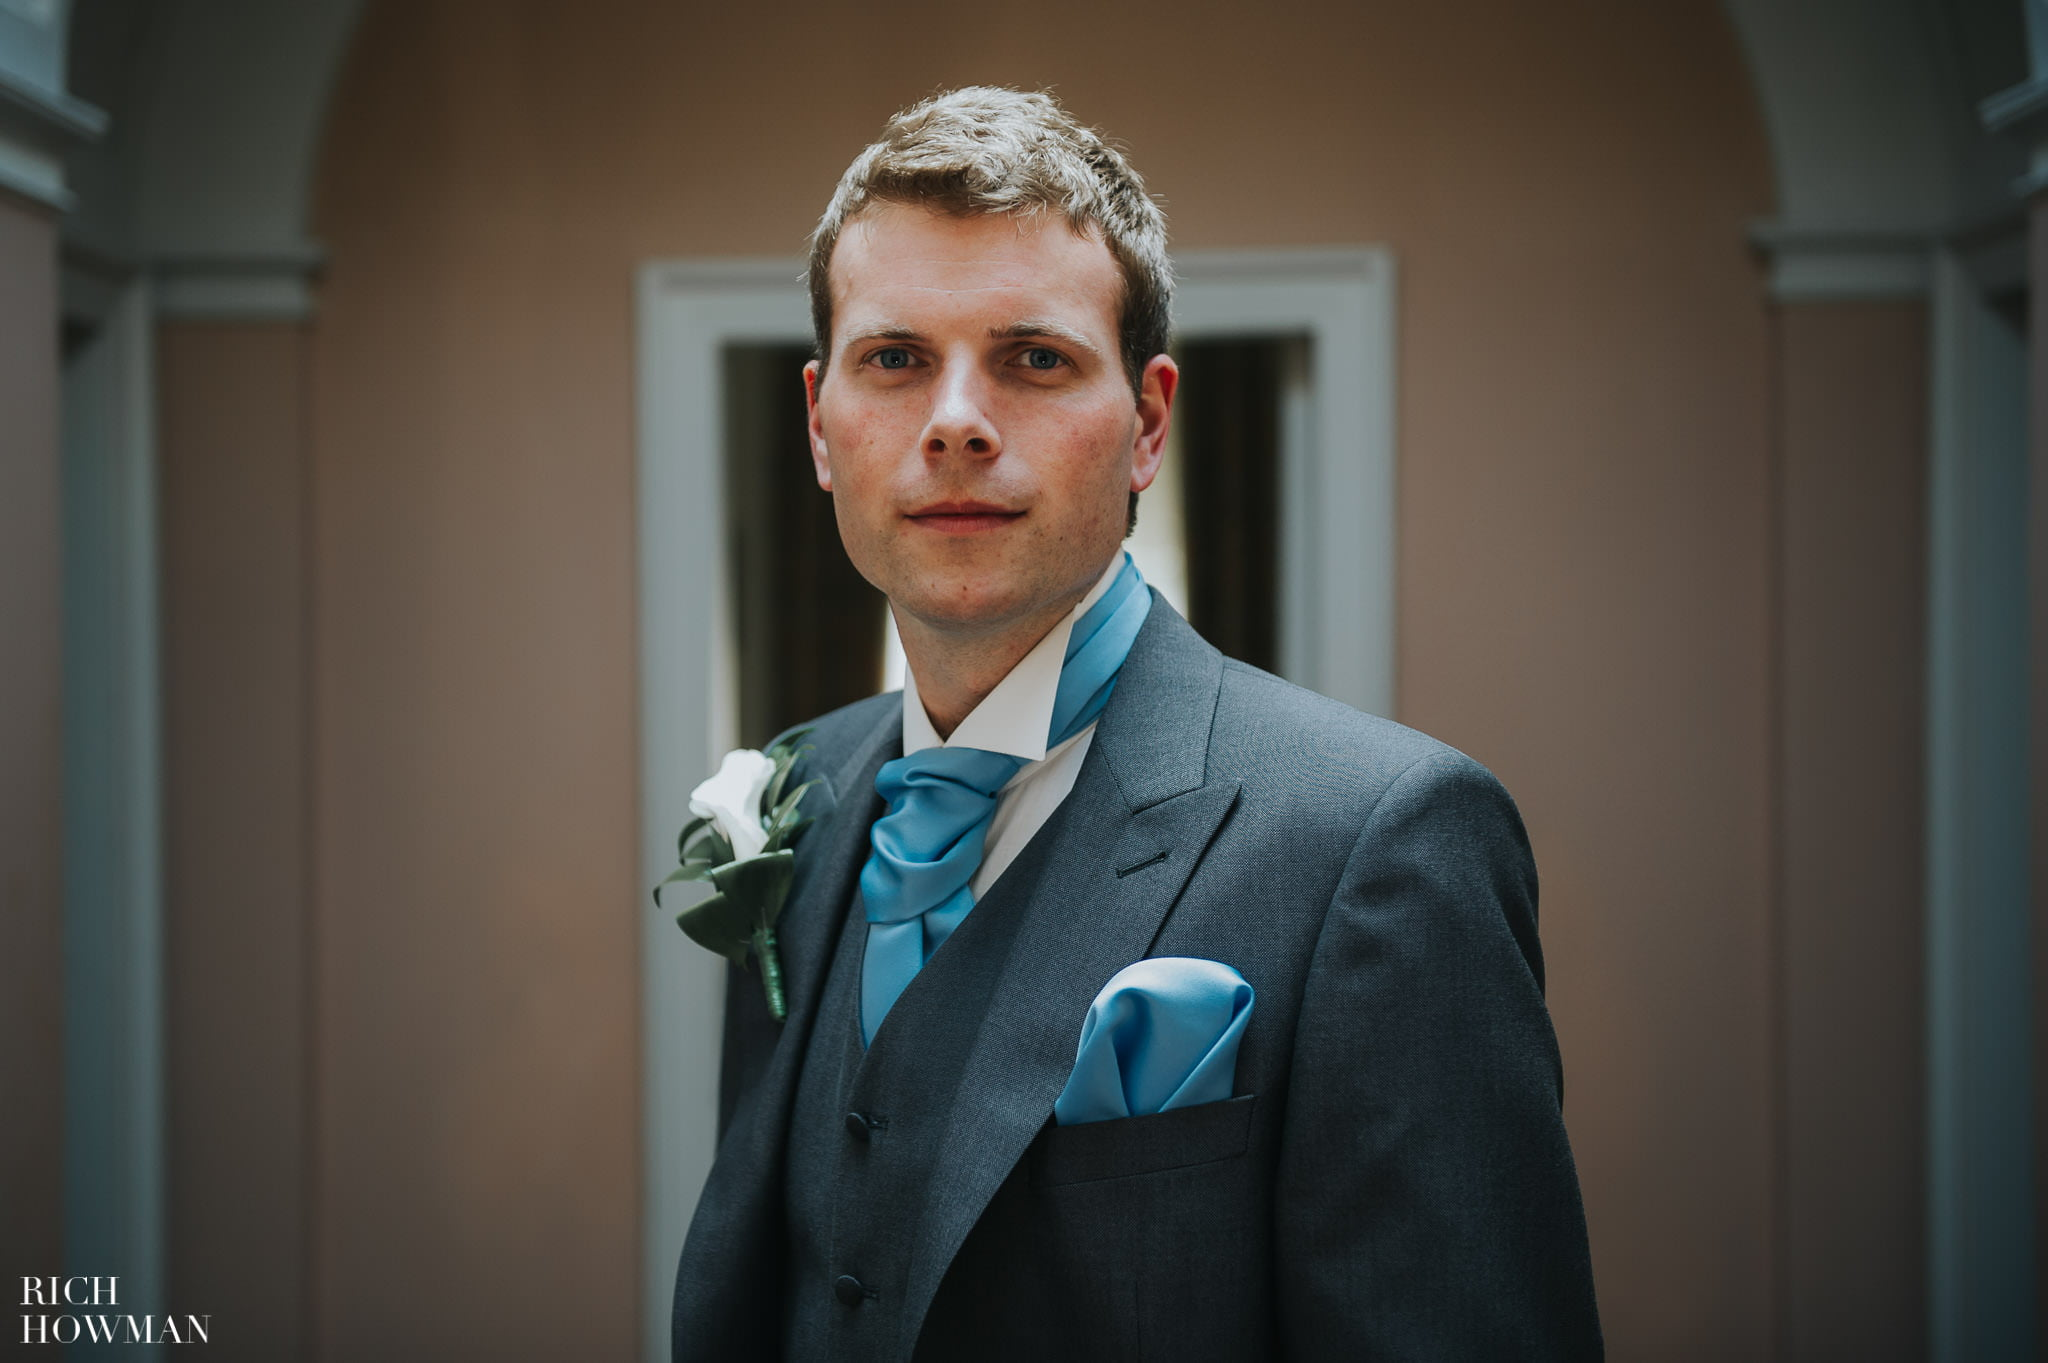 The Groom photographed during his wedding at Llanerchaeron in West Wales